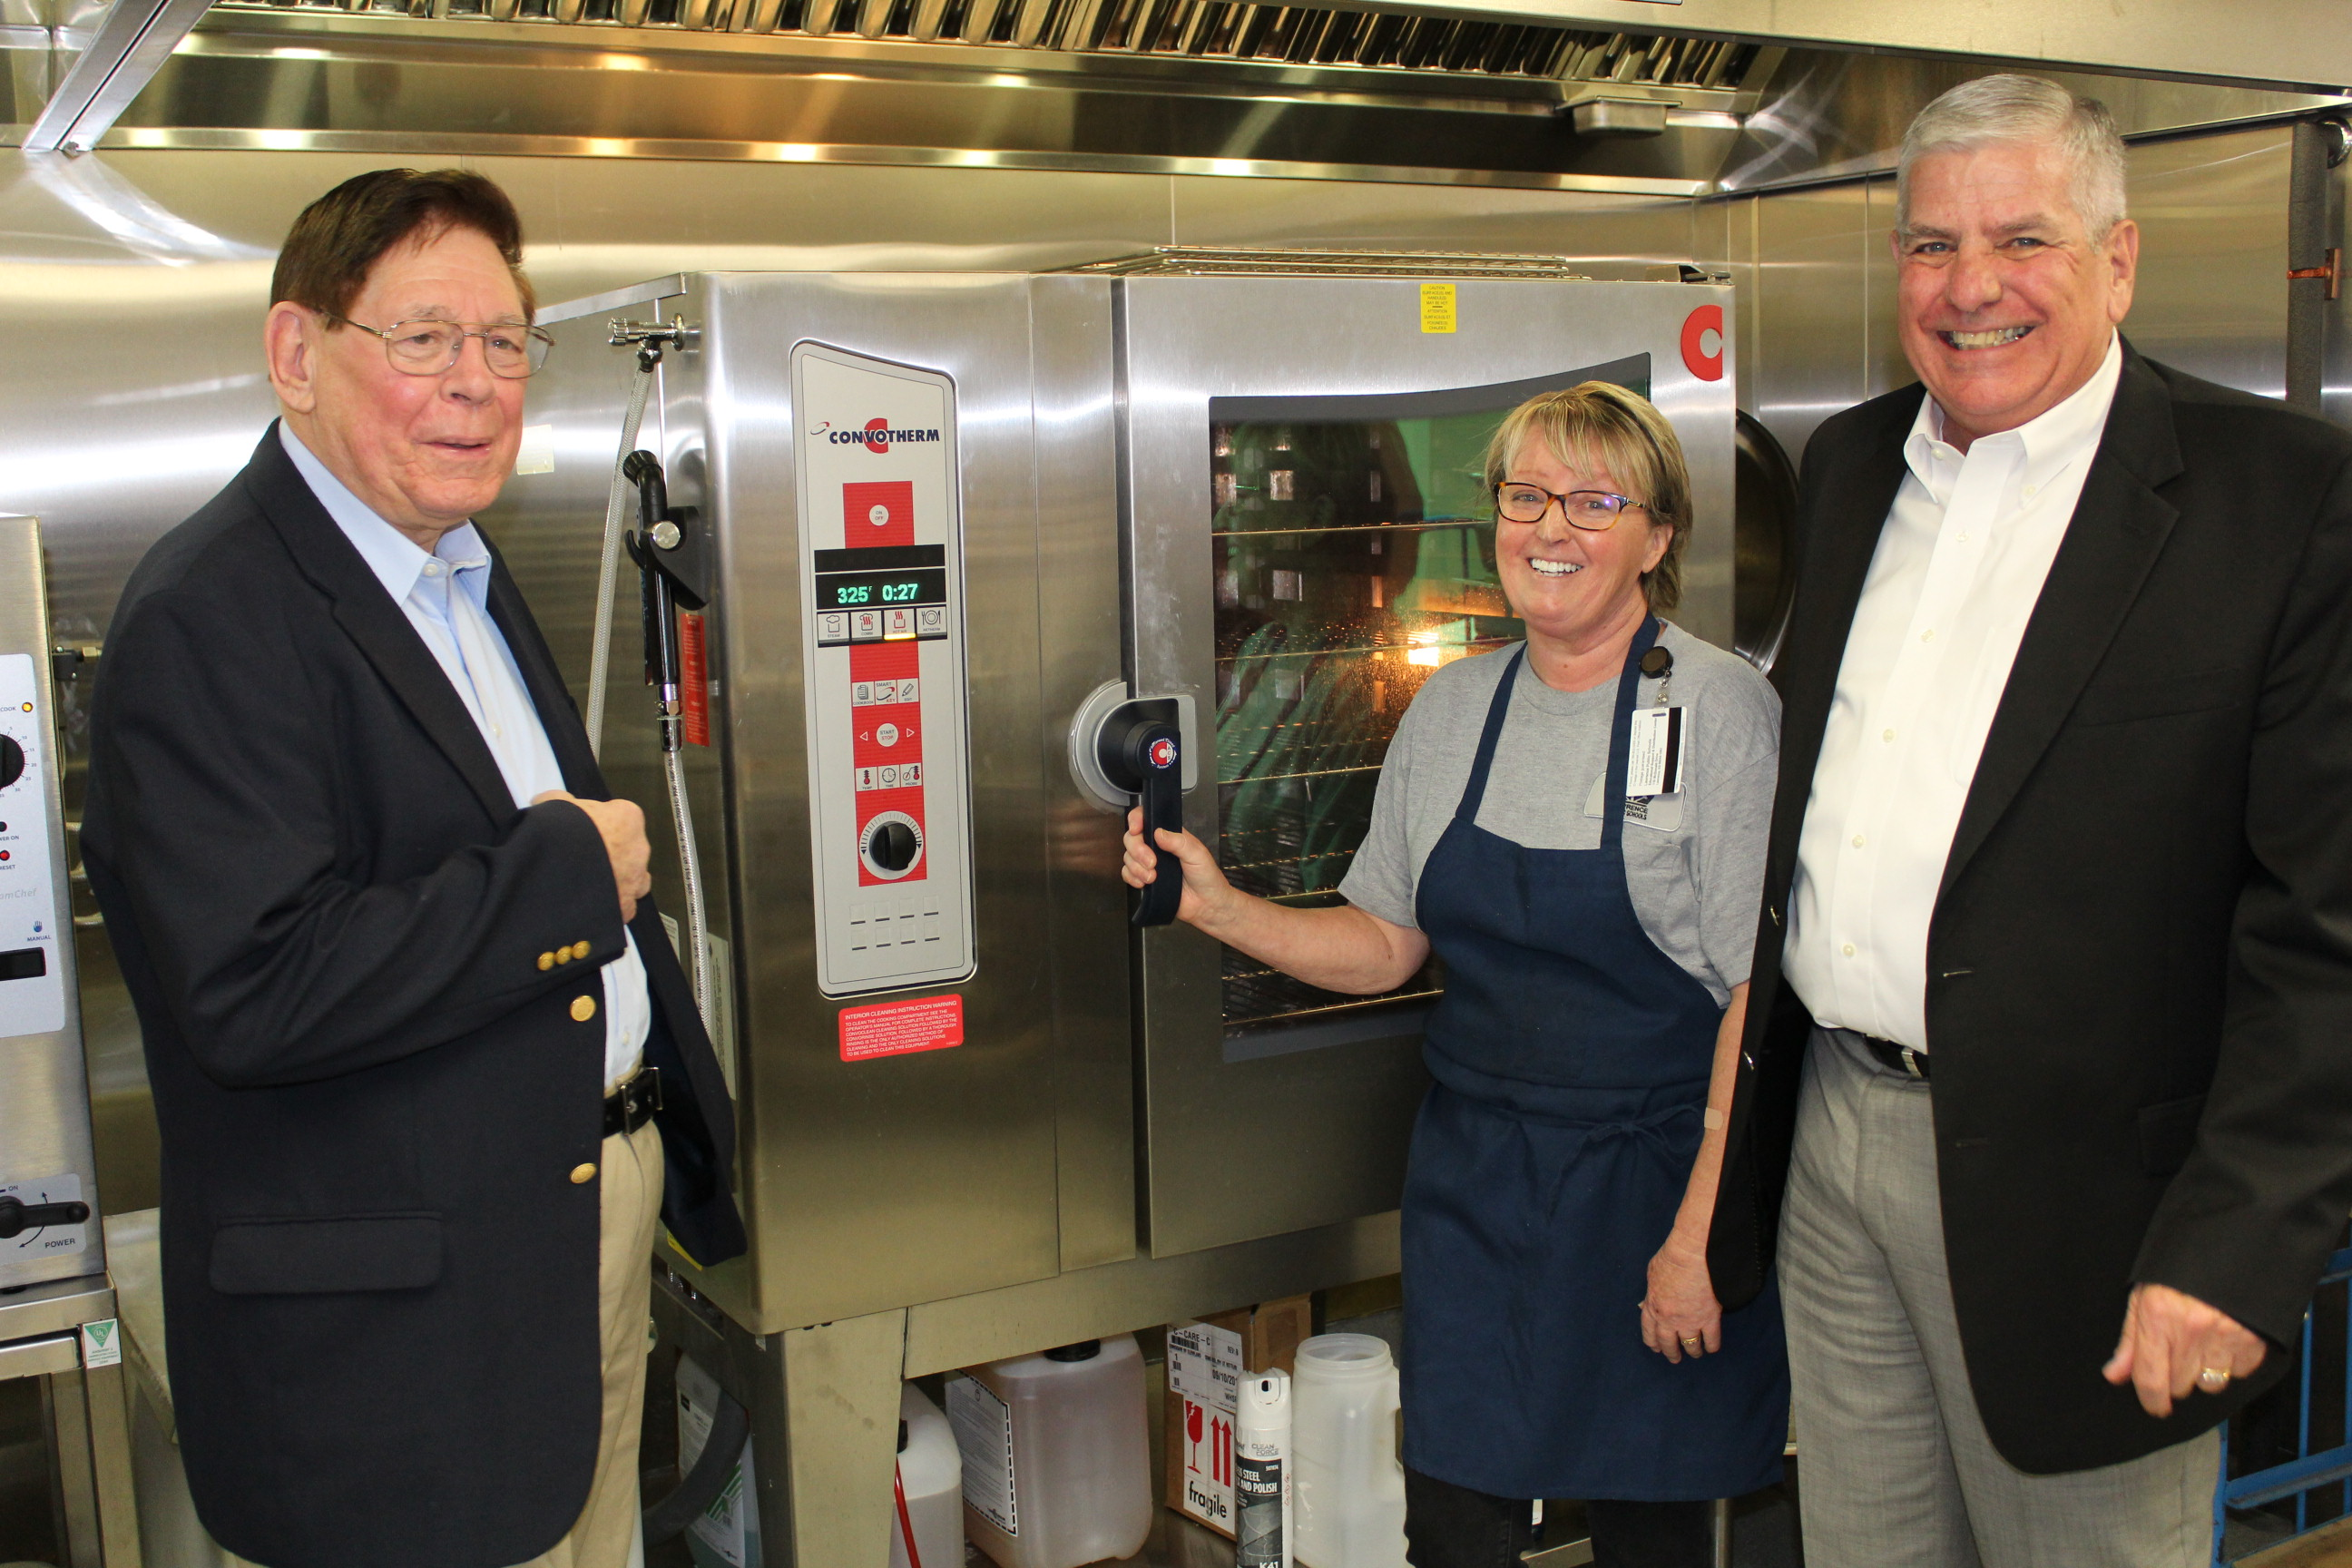 Generals Edward Gerhardt and Daryl McCall tour the upgraded kitchen facilities at Hillcrest Elementary. (Photo by J. Schafer)